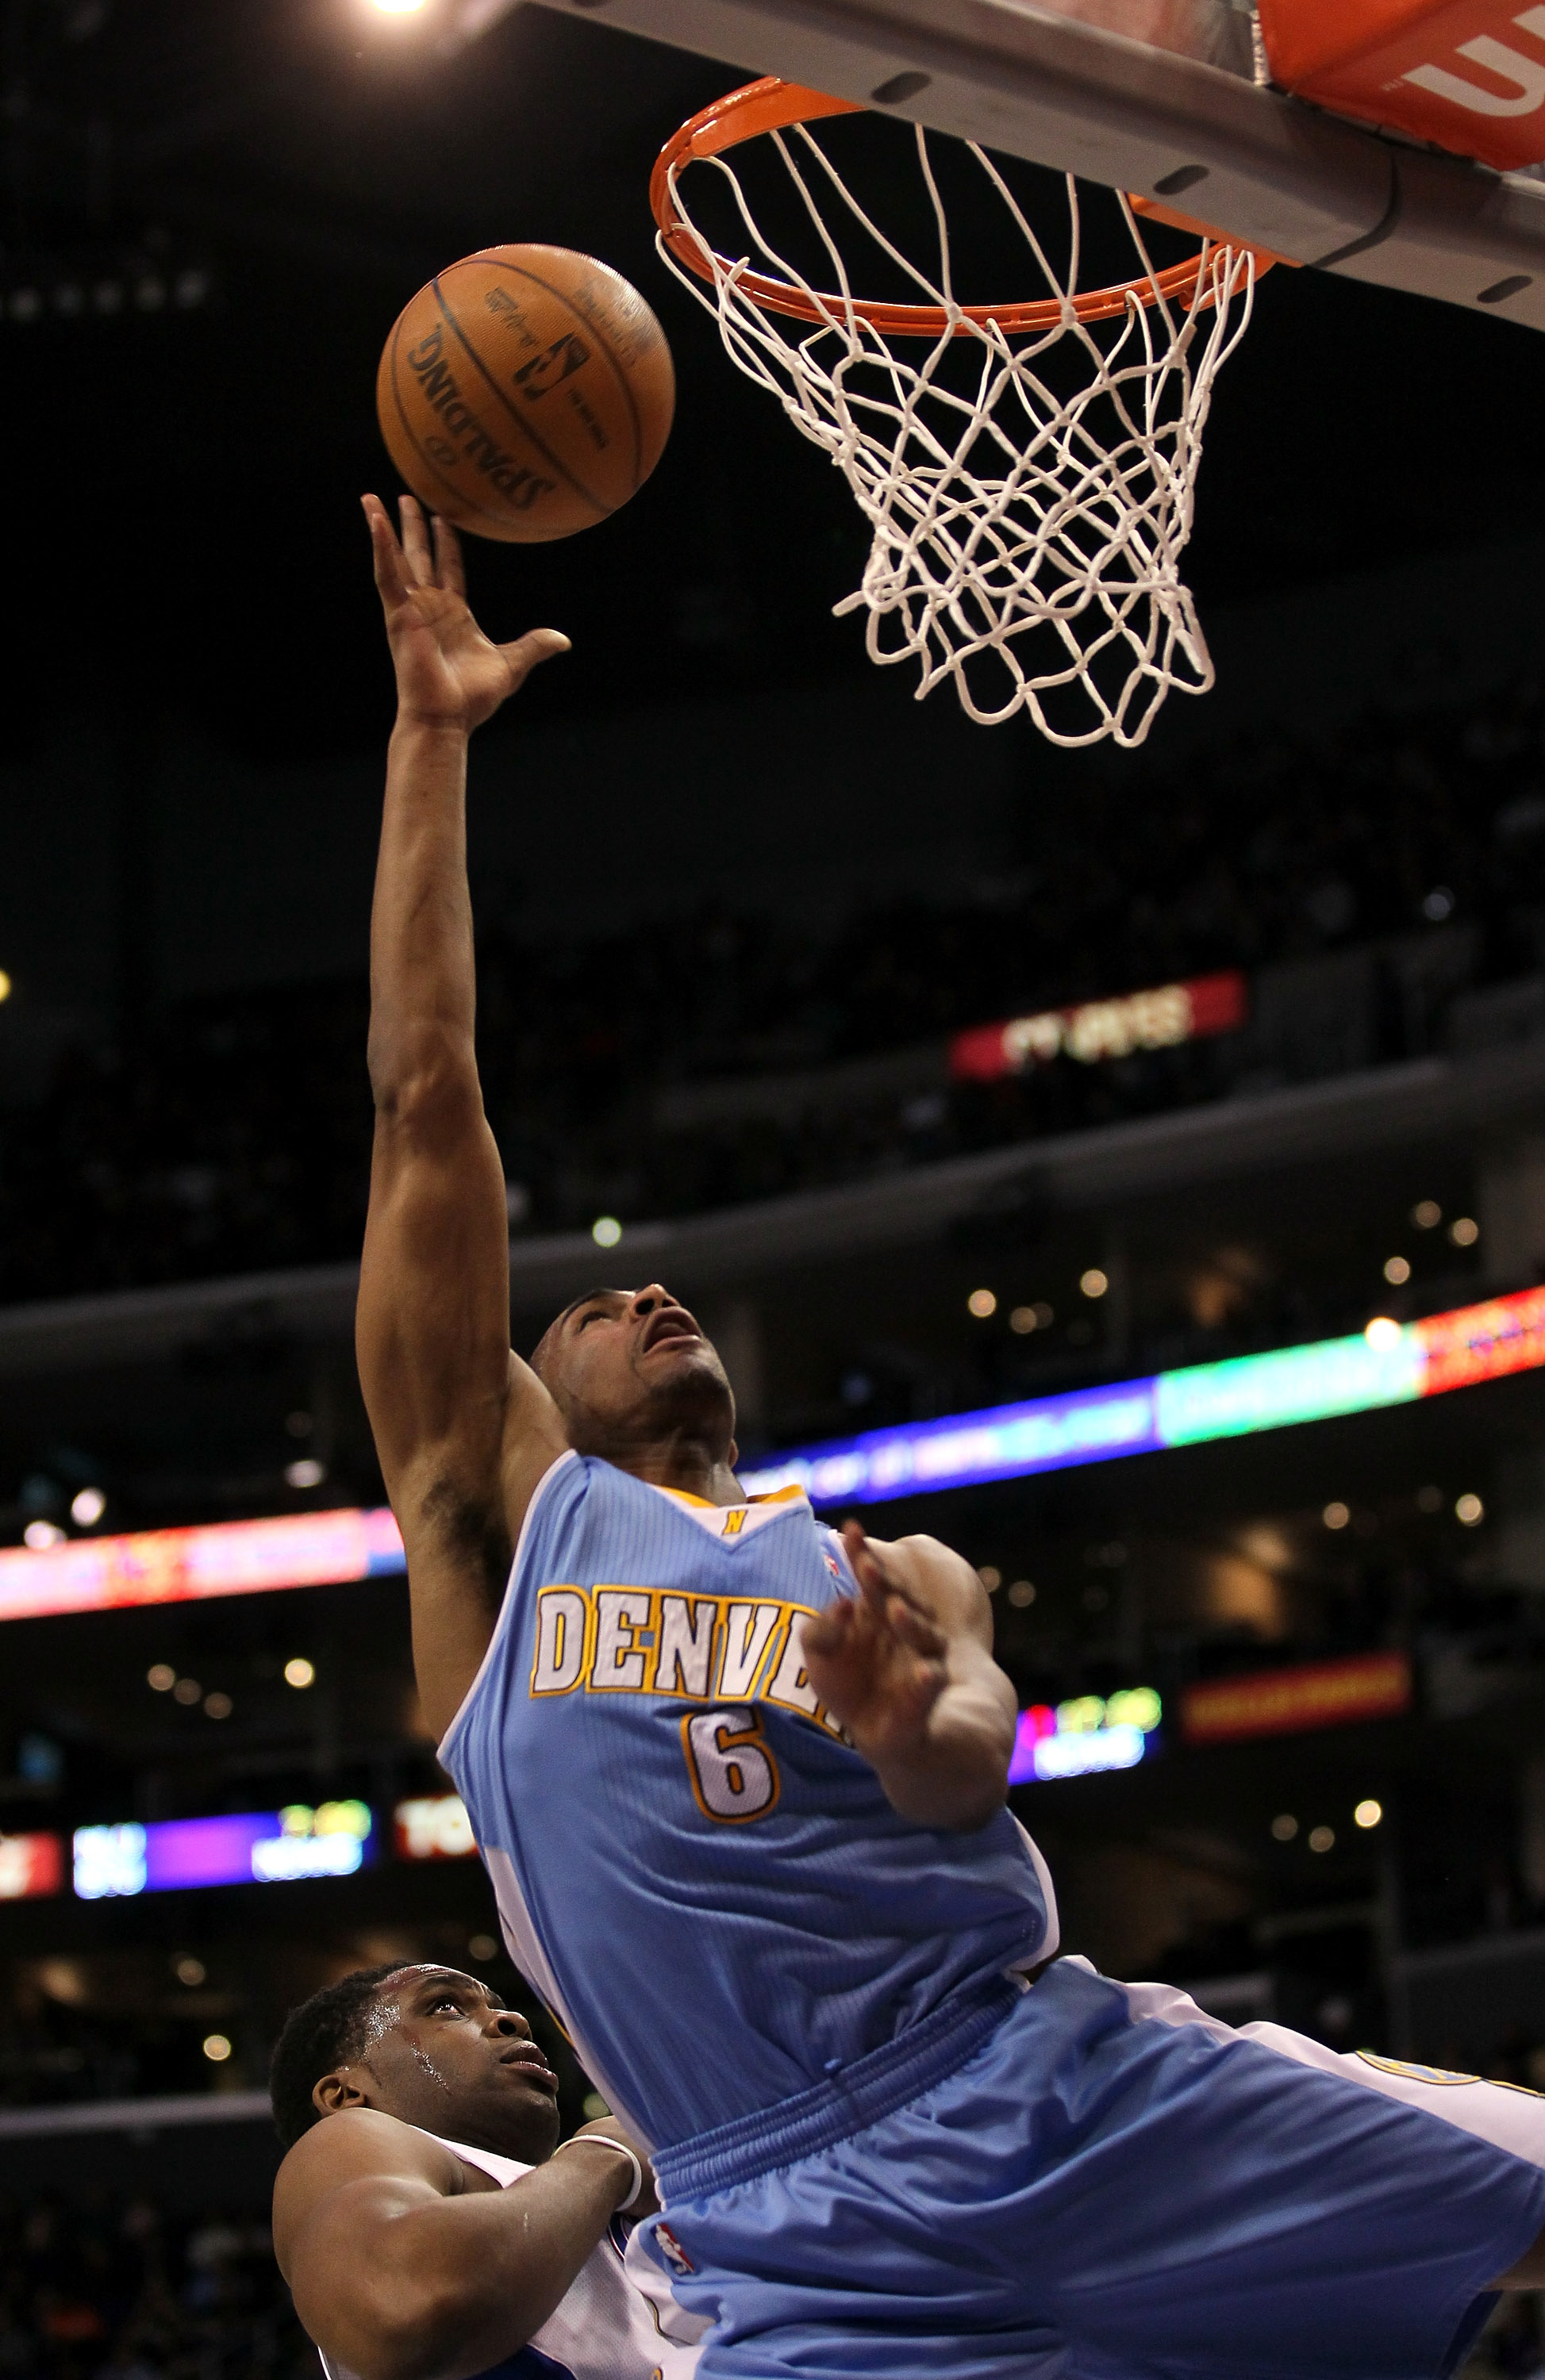 LOS ANGELES, CA - JANUARY 05:  Arron Afflalo #6 of the Denver Nuggets shoots against the Los Angeles Clippers at Staples Center on January 5, 2011  in Los Angeles, California.  The Clippers won 106-93.  NOTE TO USER: User expressly acknowledges and agrees